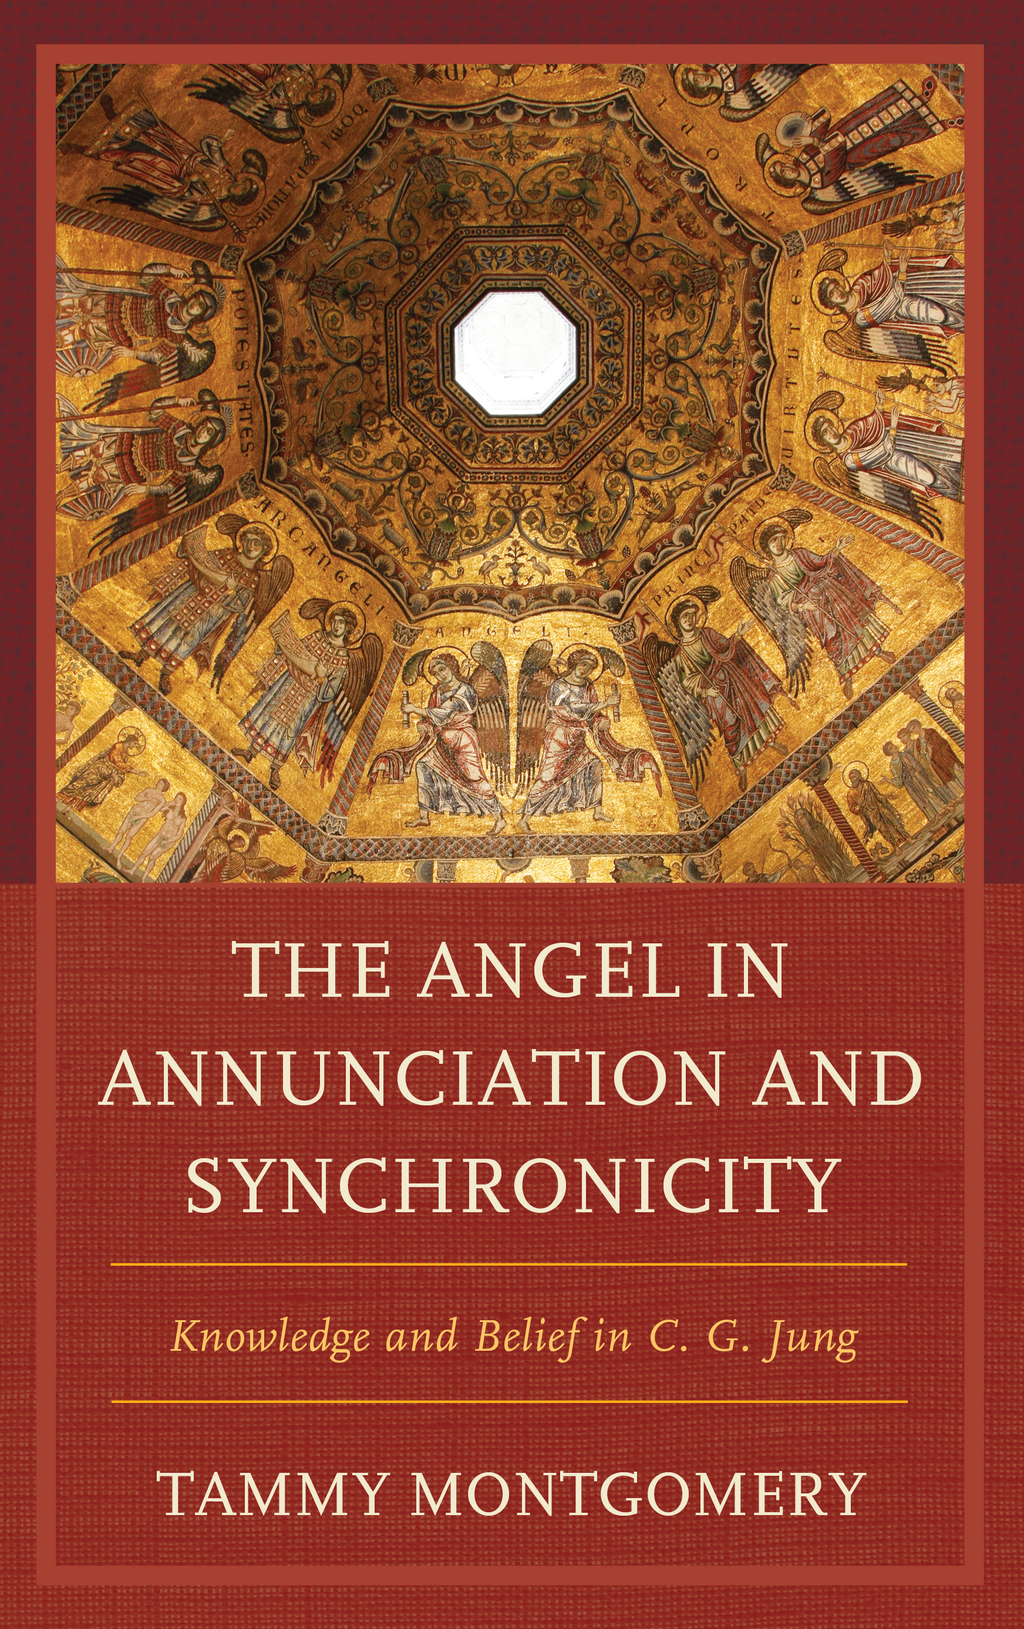 The Angel in Annunciation and Synchronicity